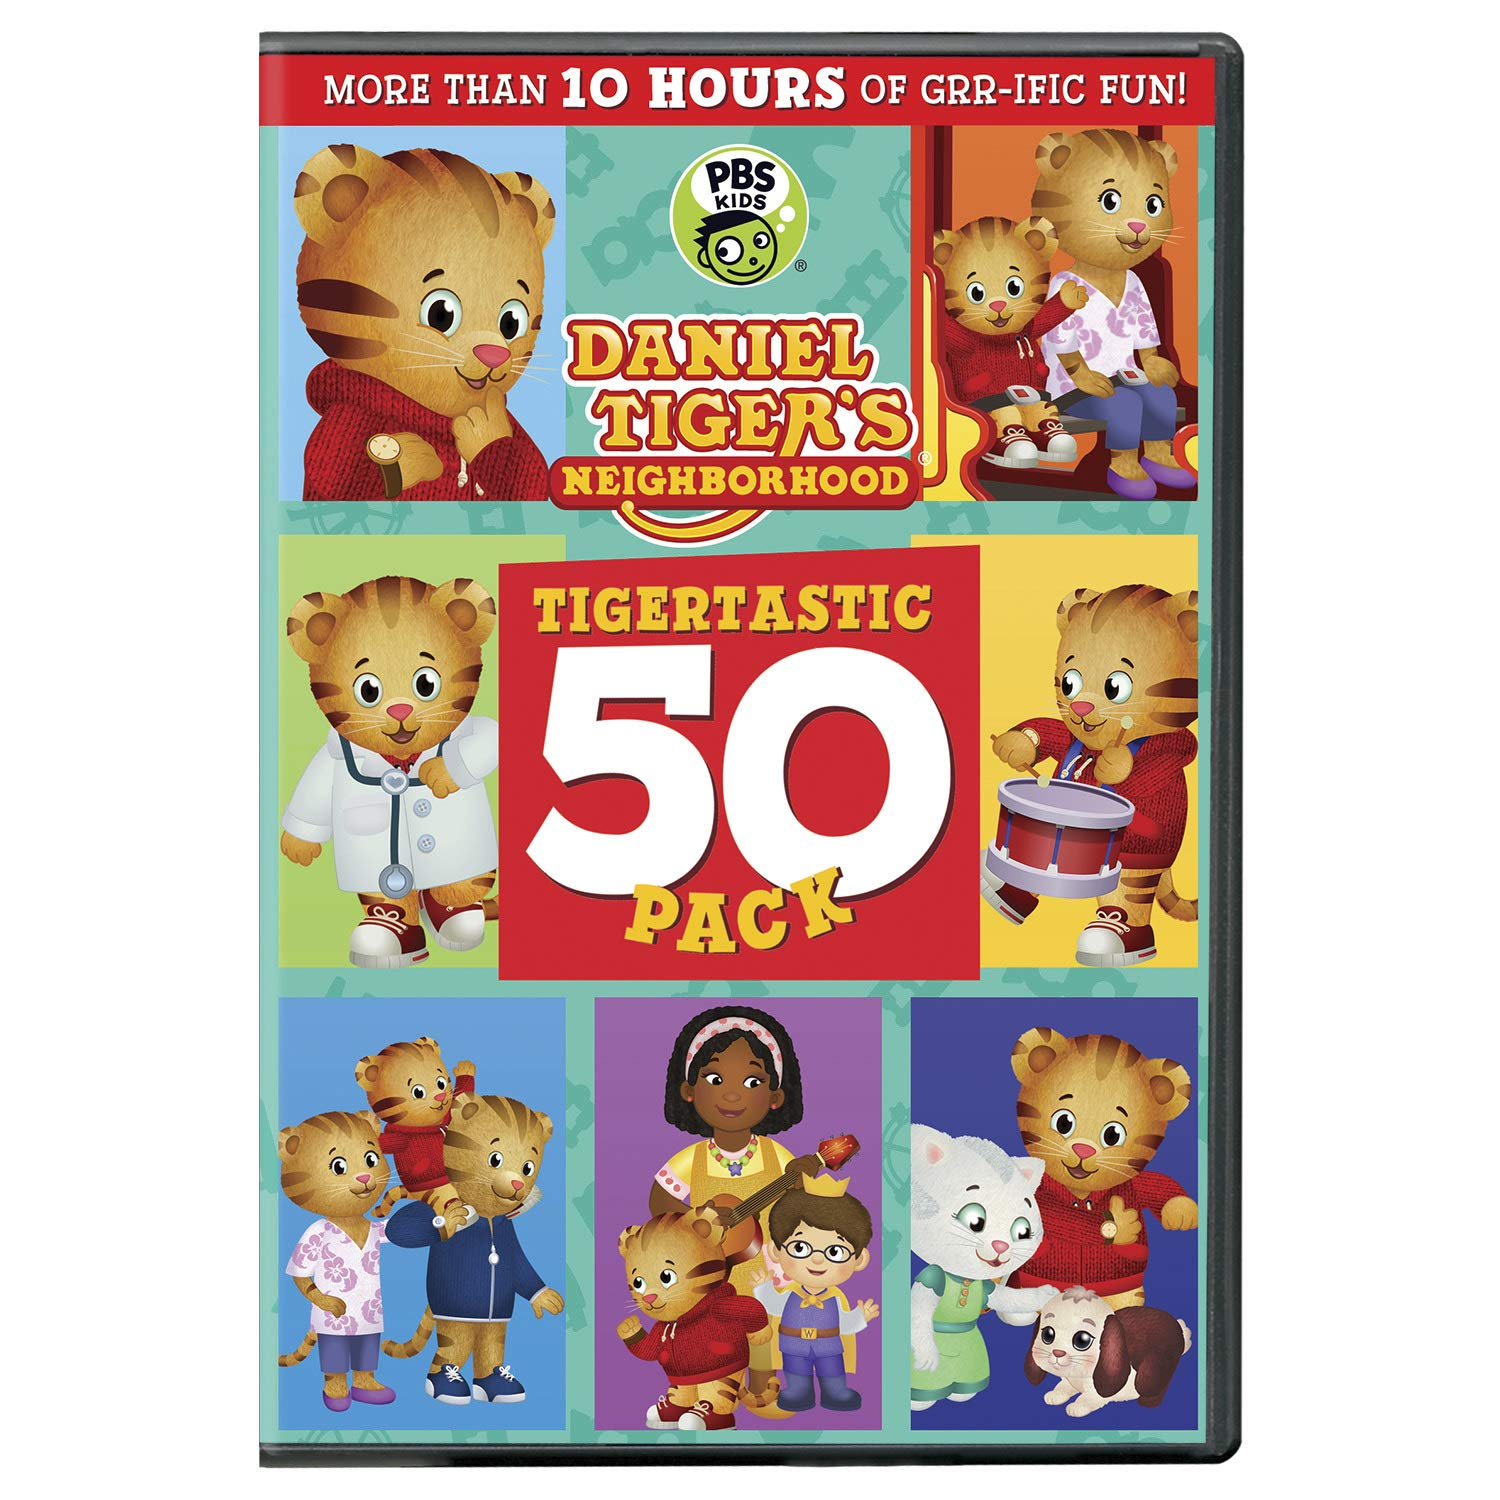 Daniel Tiger's Neighborhood: Pack 50 Inexpensive Cheap super special price Tigertastic